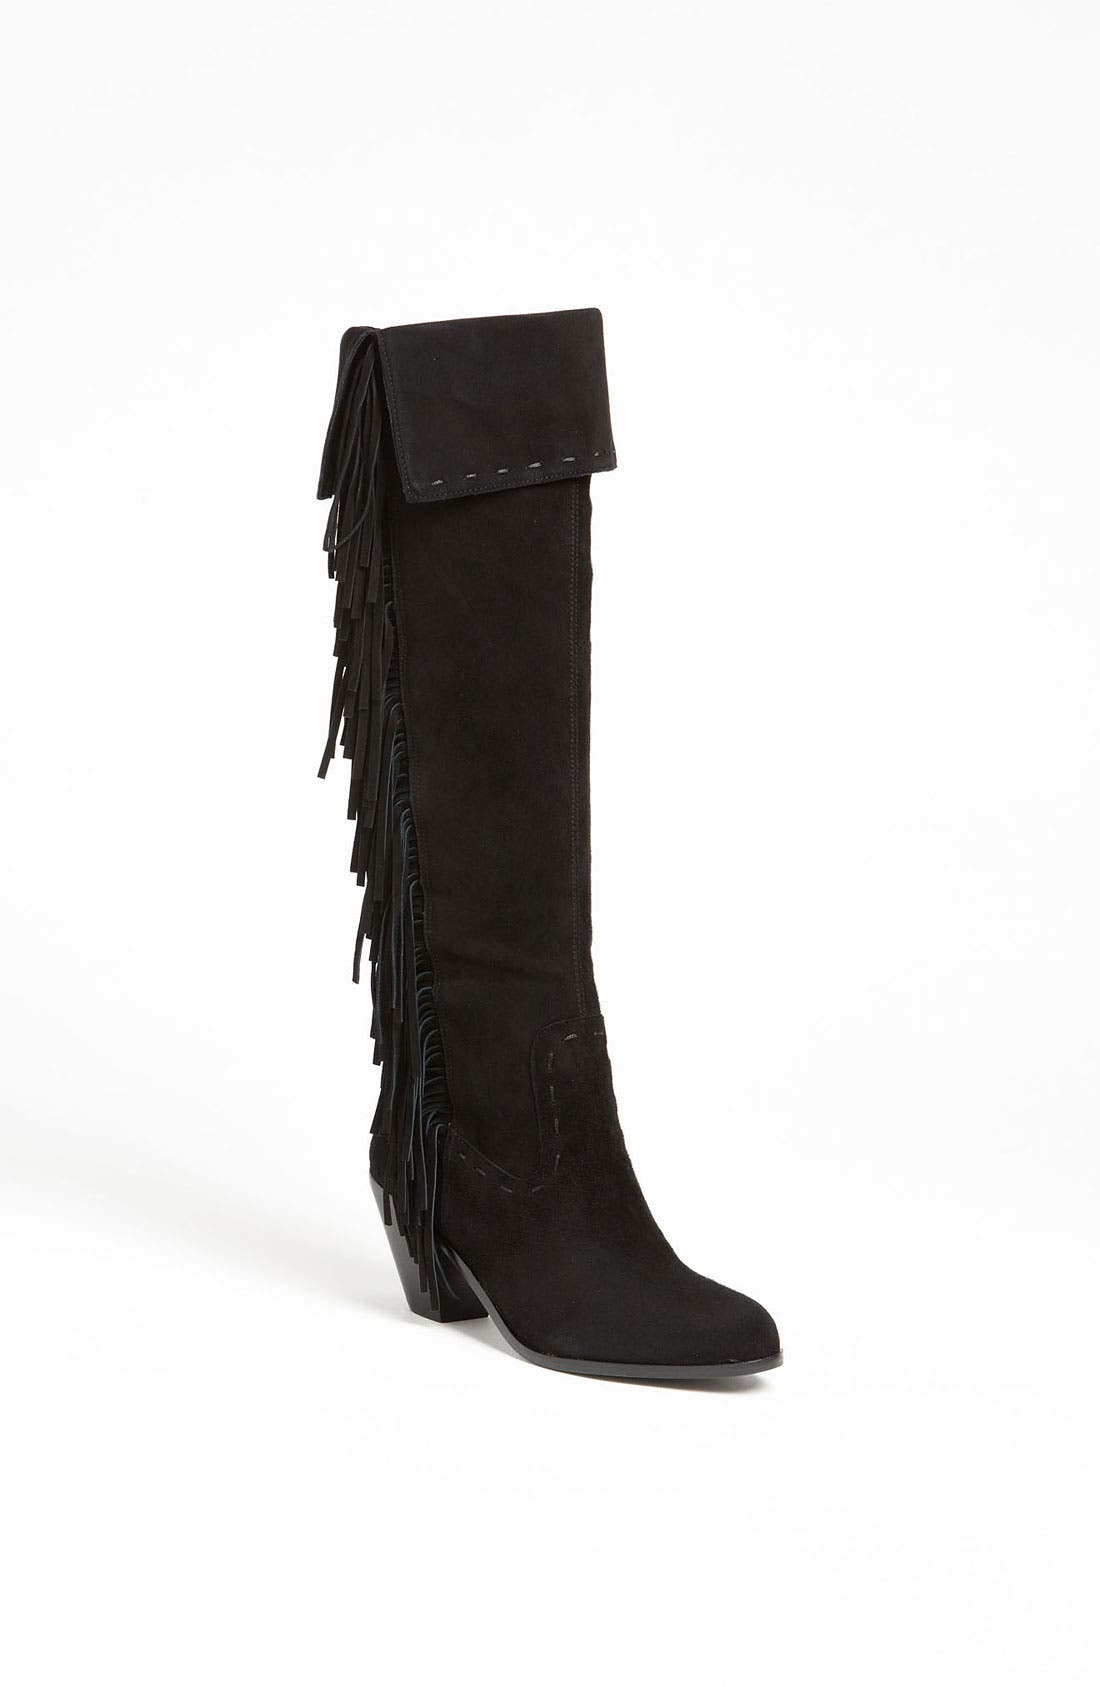 Alternate Image 1 Selected - Sam Edelman 'Louella' Boot